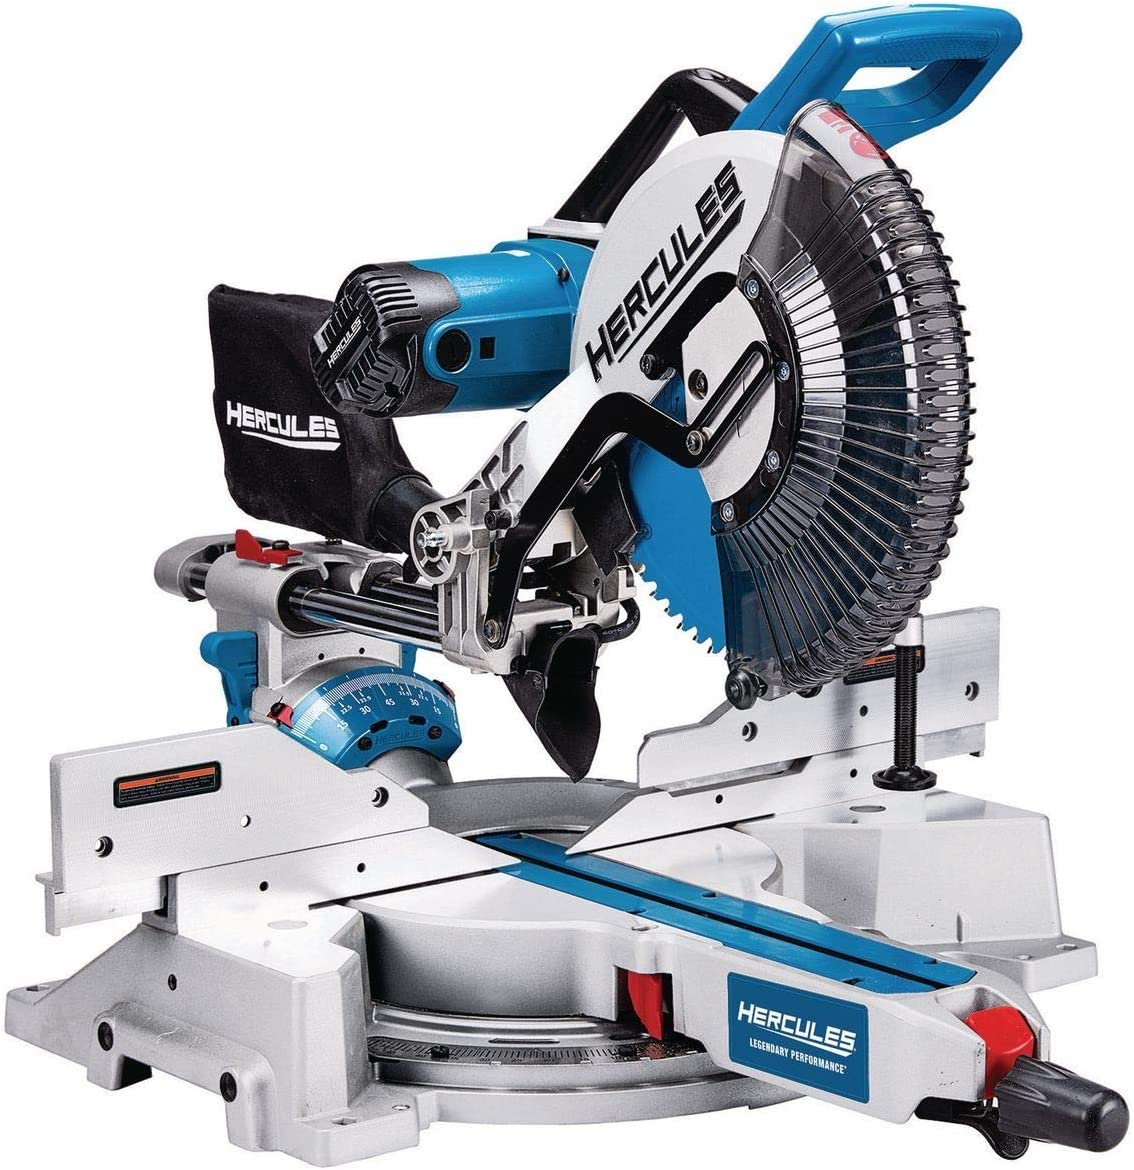 Professional 12 in. Double-Bevel Sliding Compound Miter Saw Come